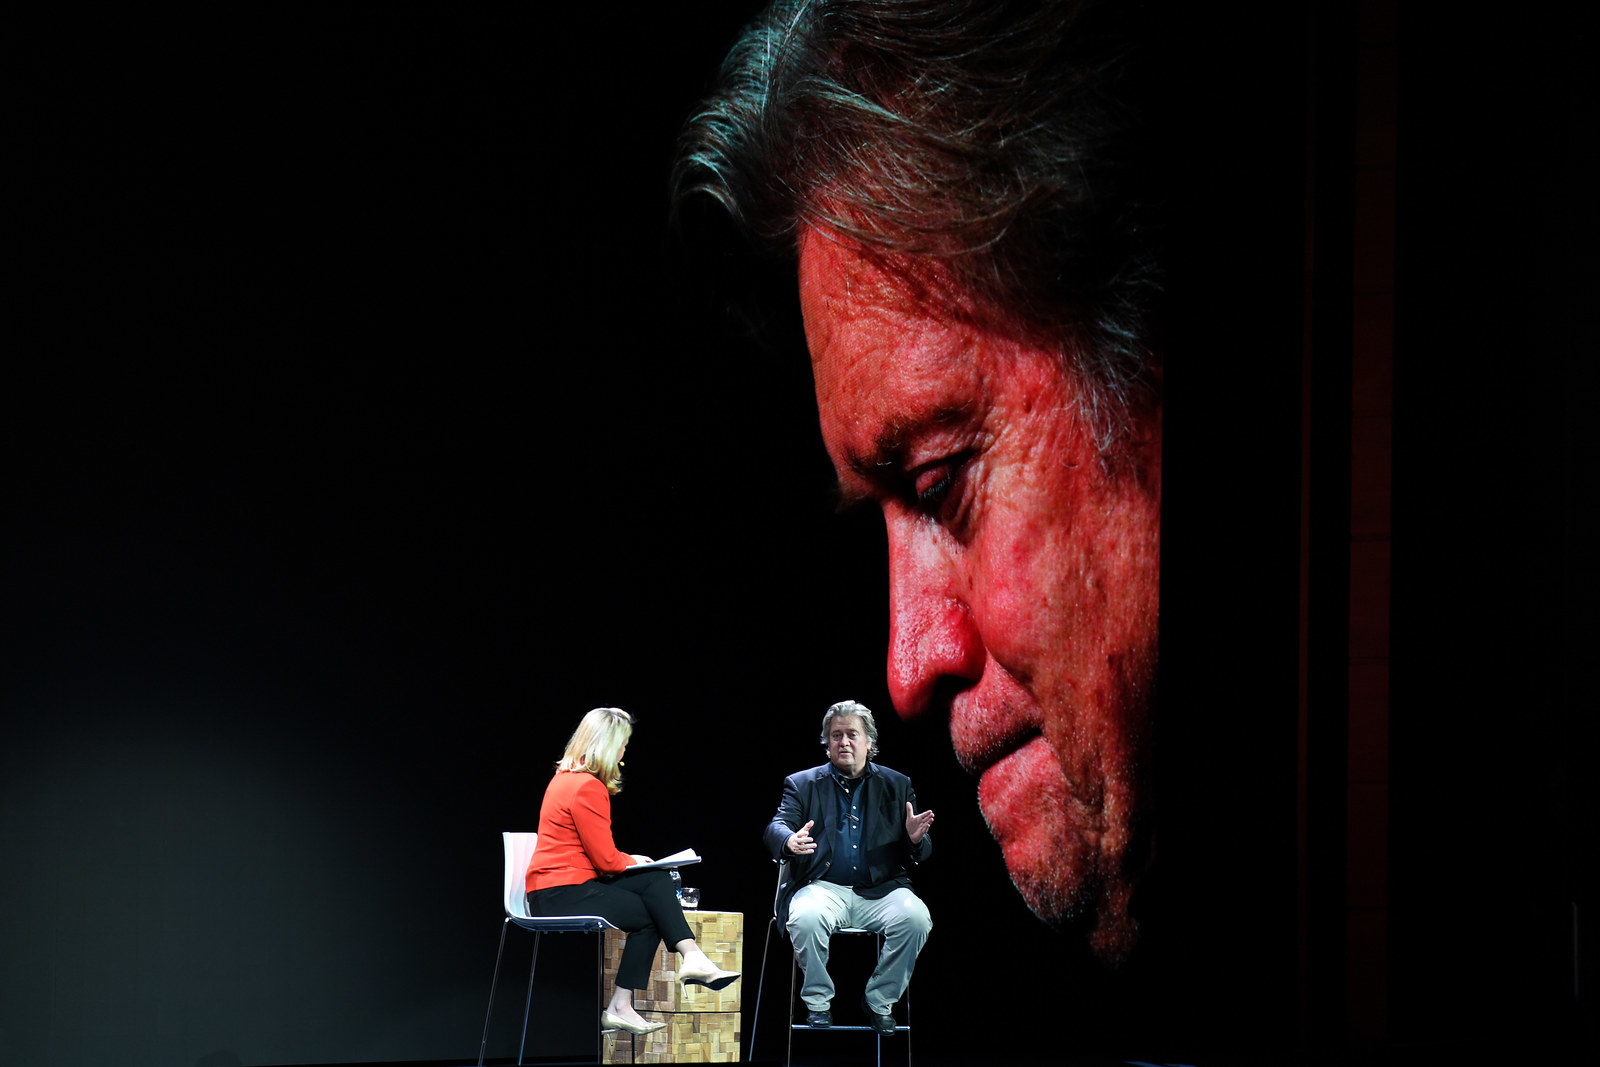 Steve Bannon being interviewed by Sarah Smith from the BBC on November 14, 2018 in Edinburgh, Scotland.